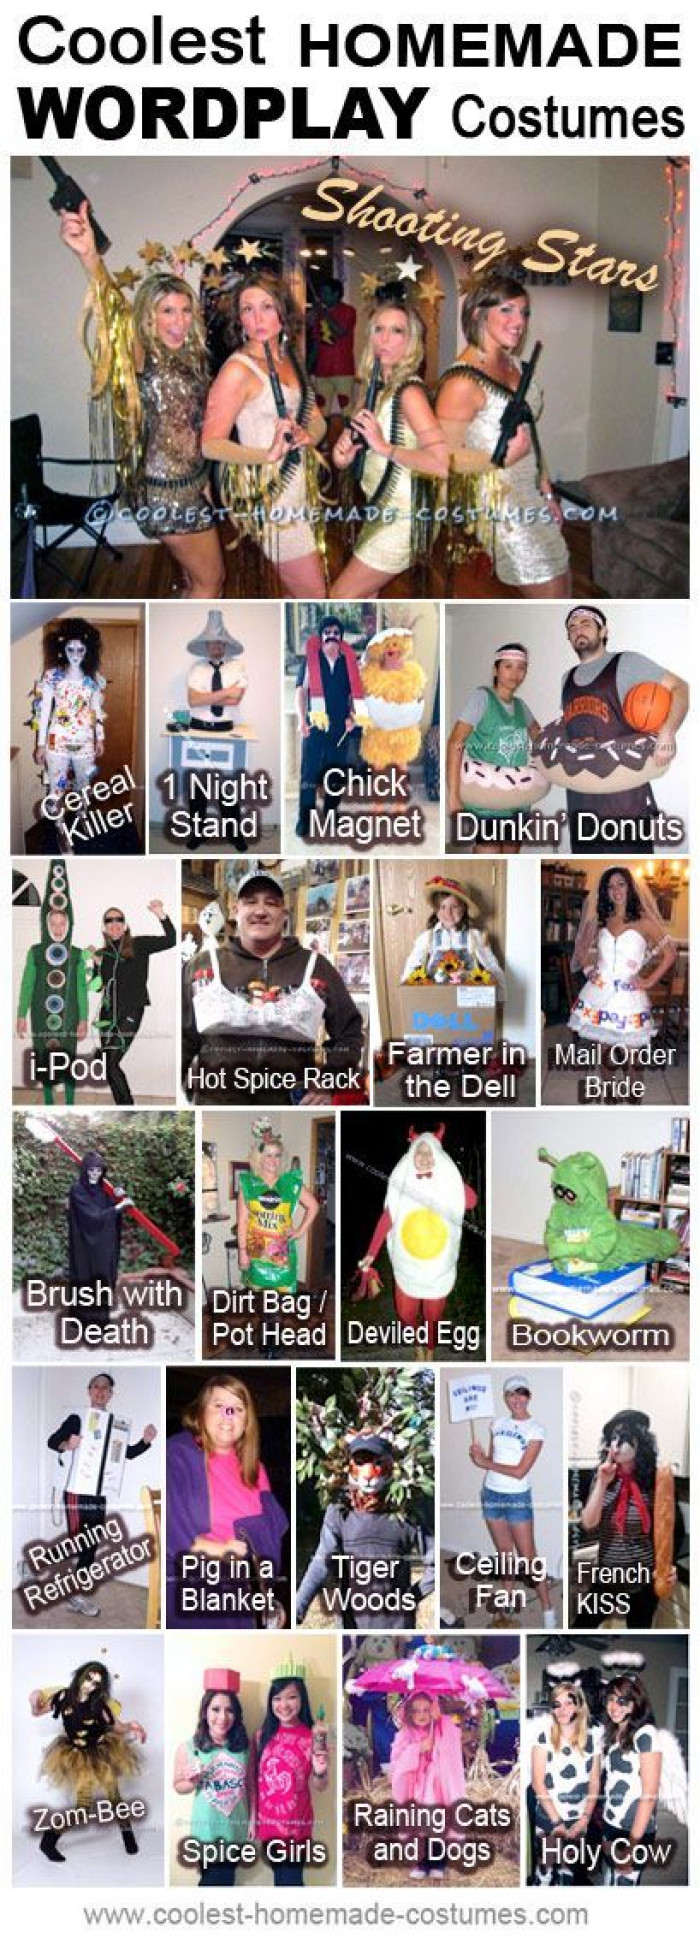 Coolest Homemade Wordplay Costumes